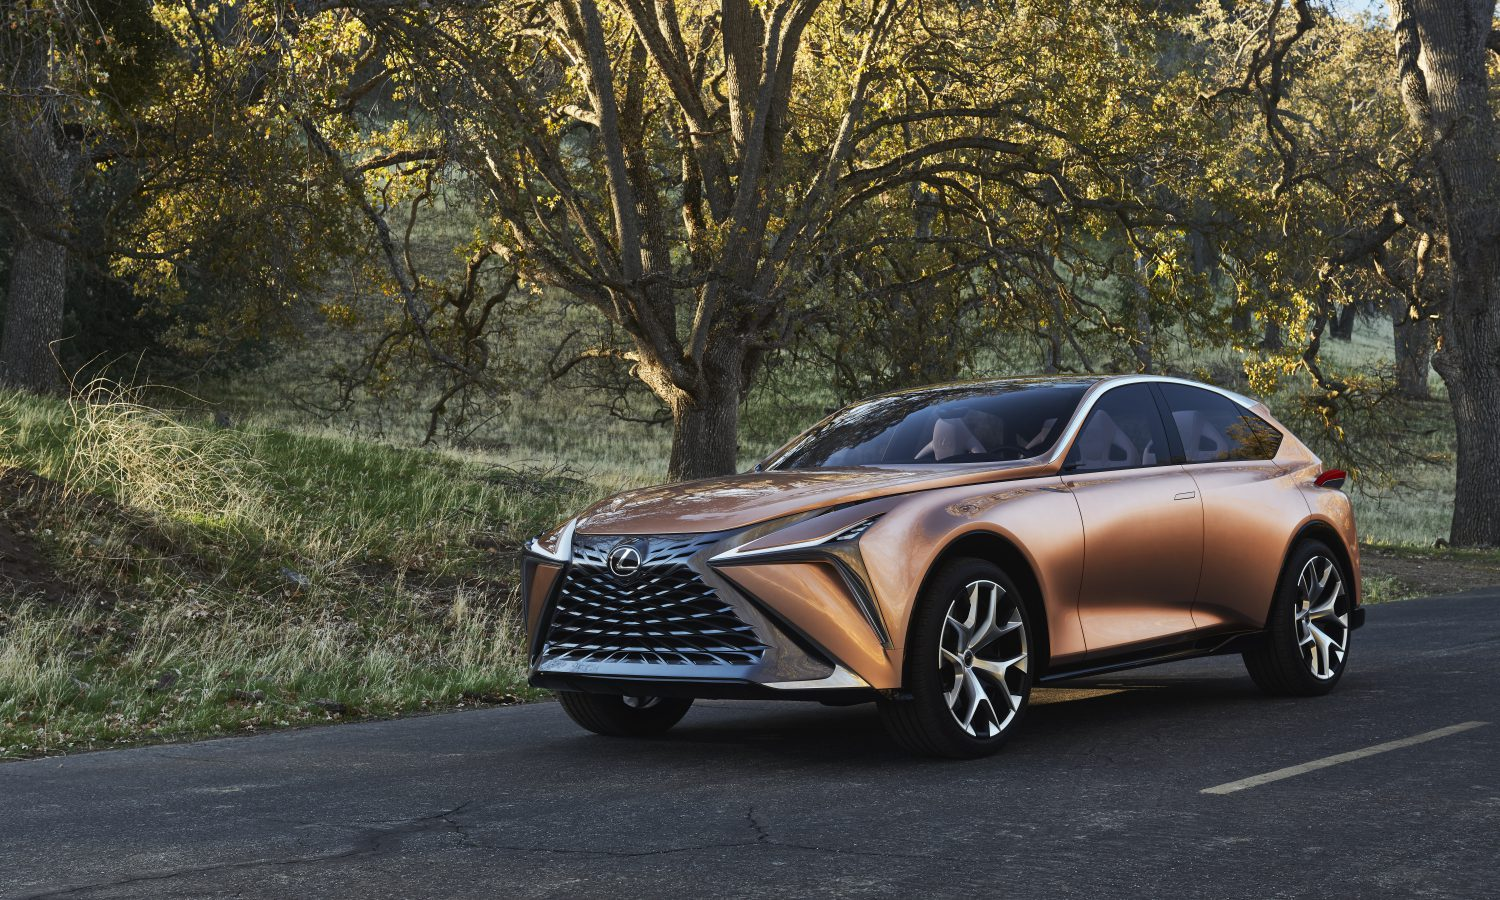 Lexus' Luxury Lineup Cruises Into the Windy City for the 2018 Chicago Auto Show